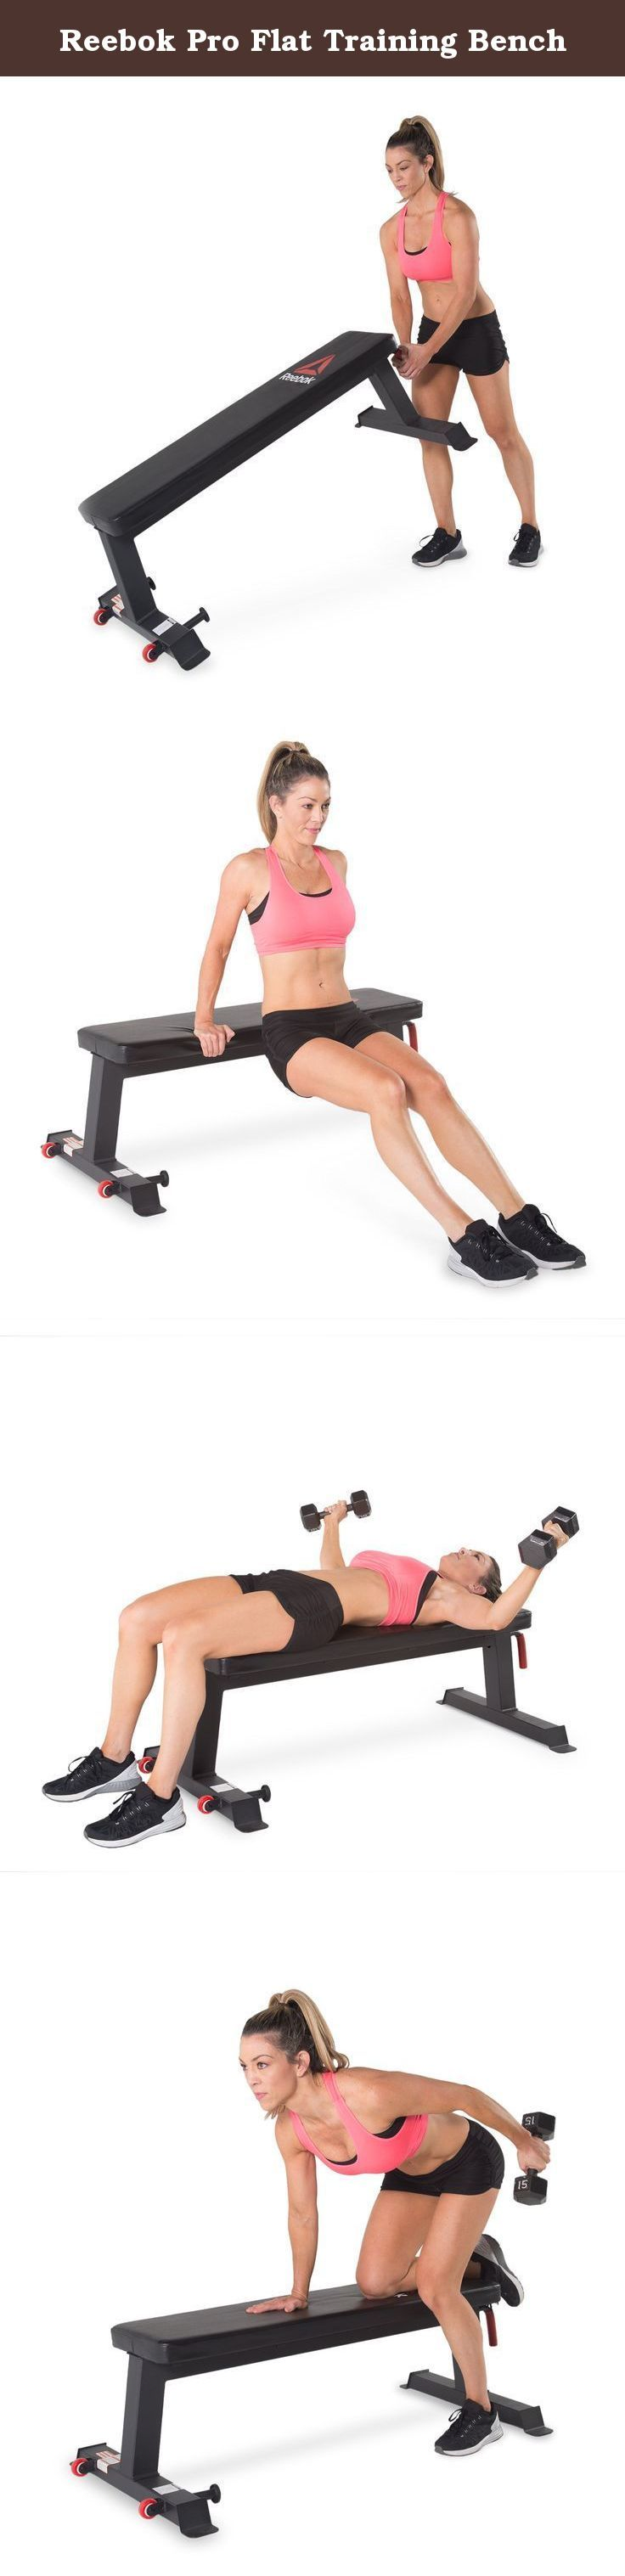 """Reebok Pro Flat Training Bench. With the Reebok Pro flat bench, the possibilities are endless. Featuring high density foam cushioning, the 10"""" x 47.5"""" bench provides a comfortable and sturdy surface for Weightlifting, with a 17"""" ground clearance for greater stability and reduction of back arch through your lift. Taking the weight bench back to basics, the Reebok Pro flat bench is straight forward to assemble whilst its integrated wheels and handle make it easy to manoeuvre. For all levels…"""